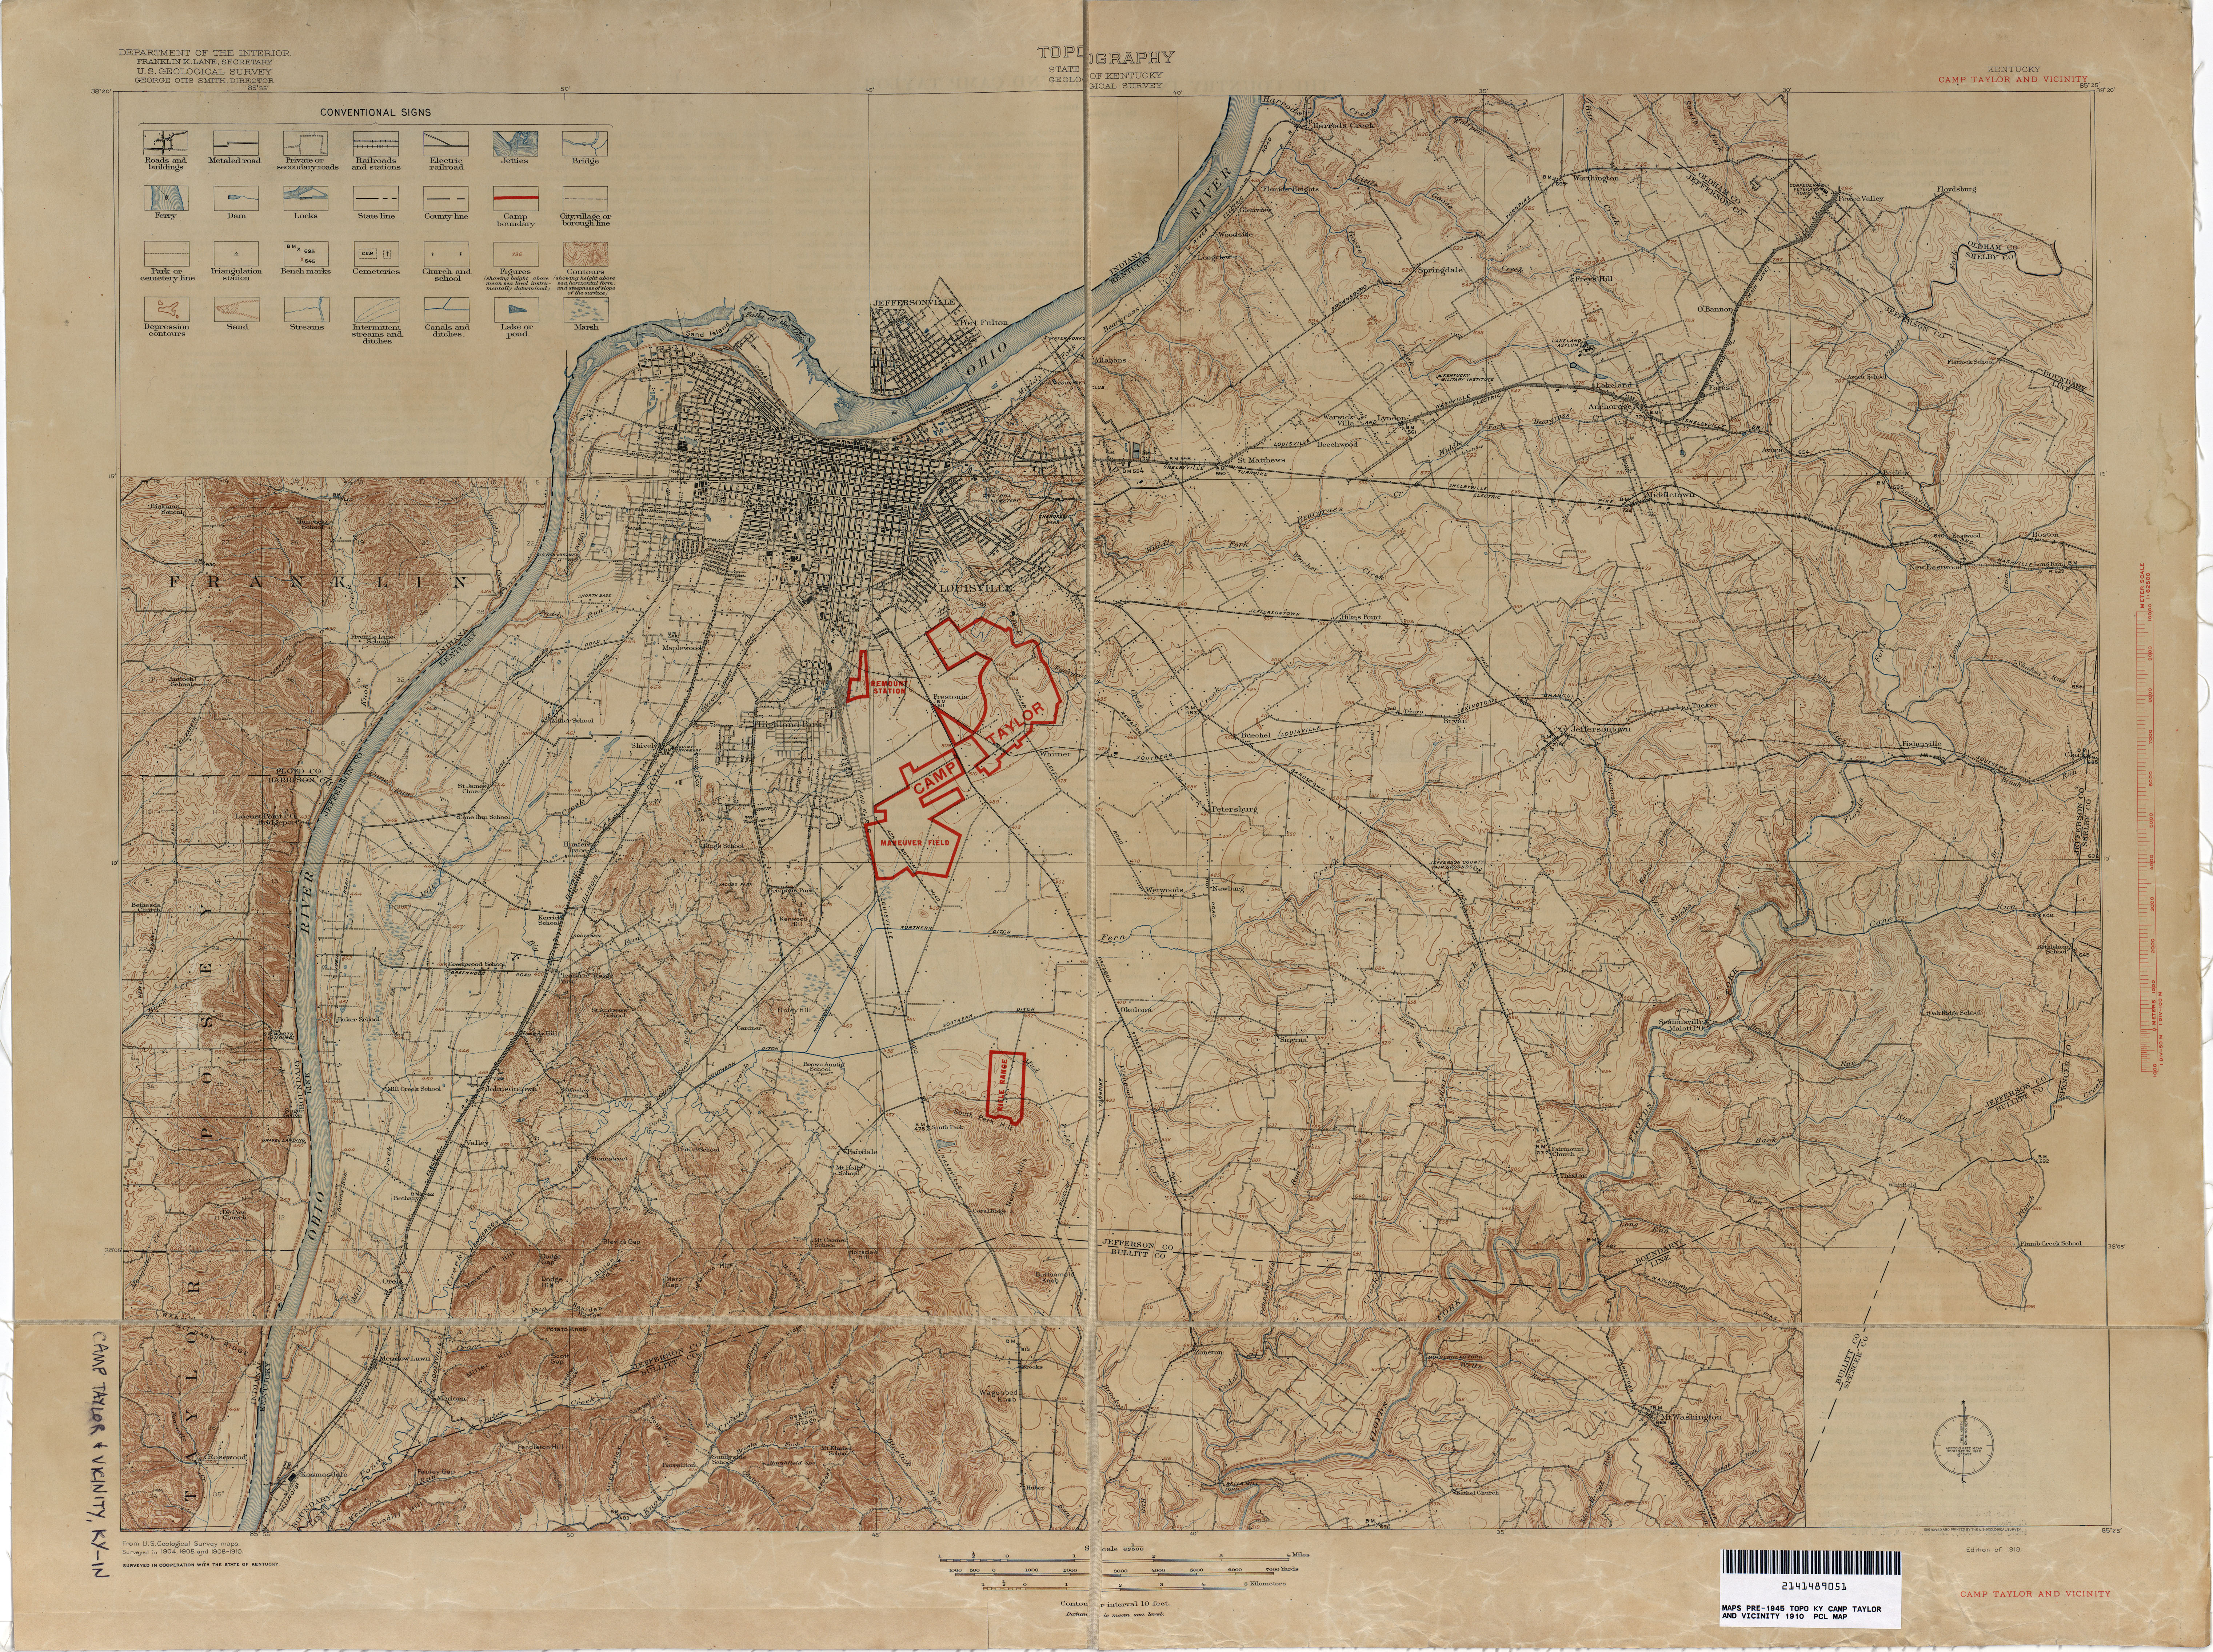 Kentucky Historical Topographic Maps - Perry-Castañeda Map ... on ky zip code map, ky pipeline map, nicholasville ky map, ky city map, ky state map, ky tn map, ky river map, florence ky map, louisville map, knox county ne platte map, ky district map, ky weather map, kentucky map, paducah ky map, lebanon ky map, ky hwy map, ky snow map, ky co map, ky parkways map, ky airport map,